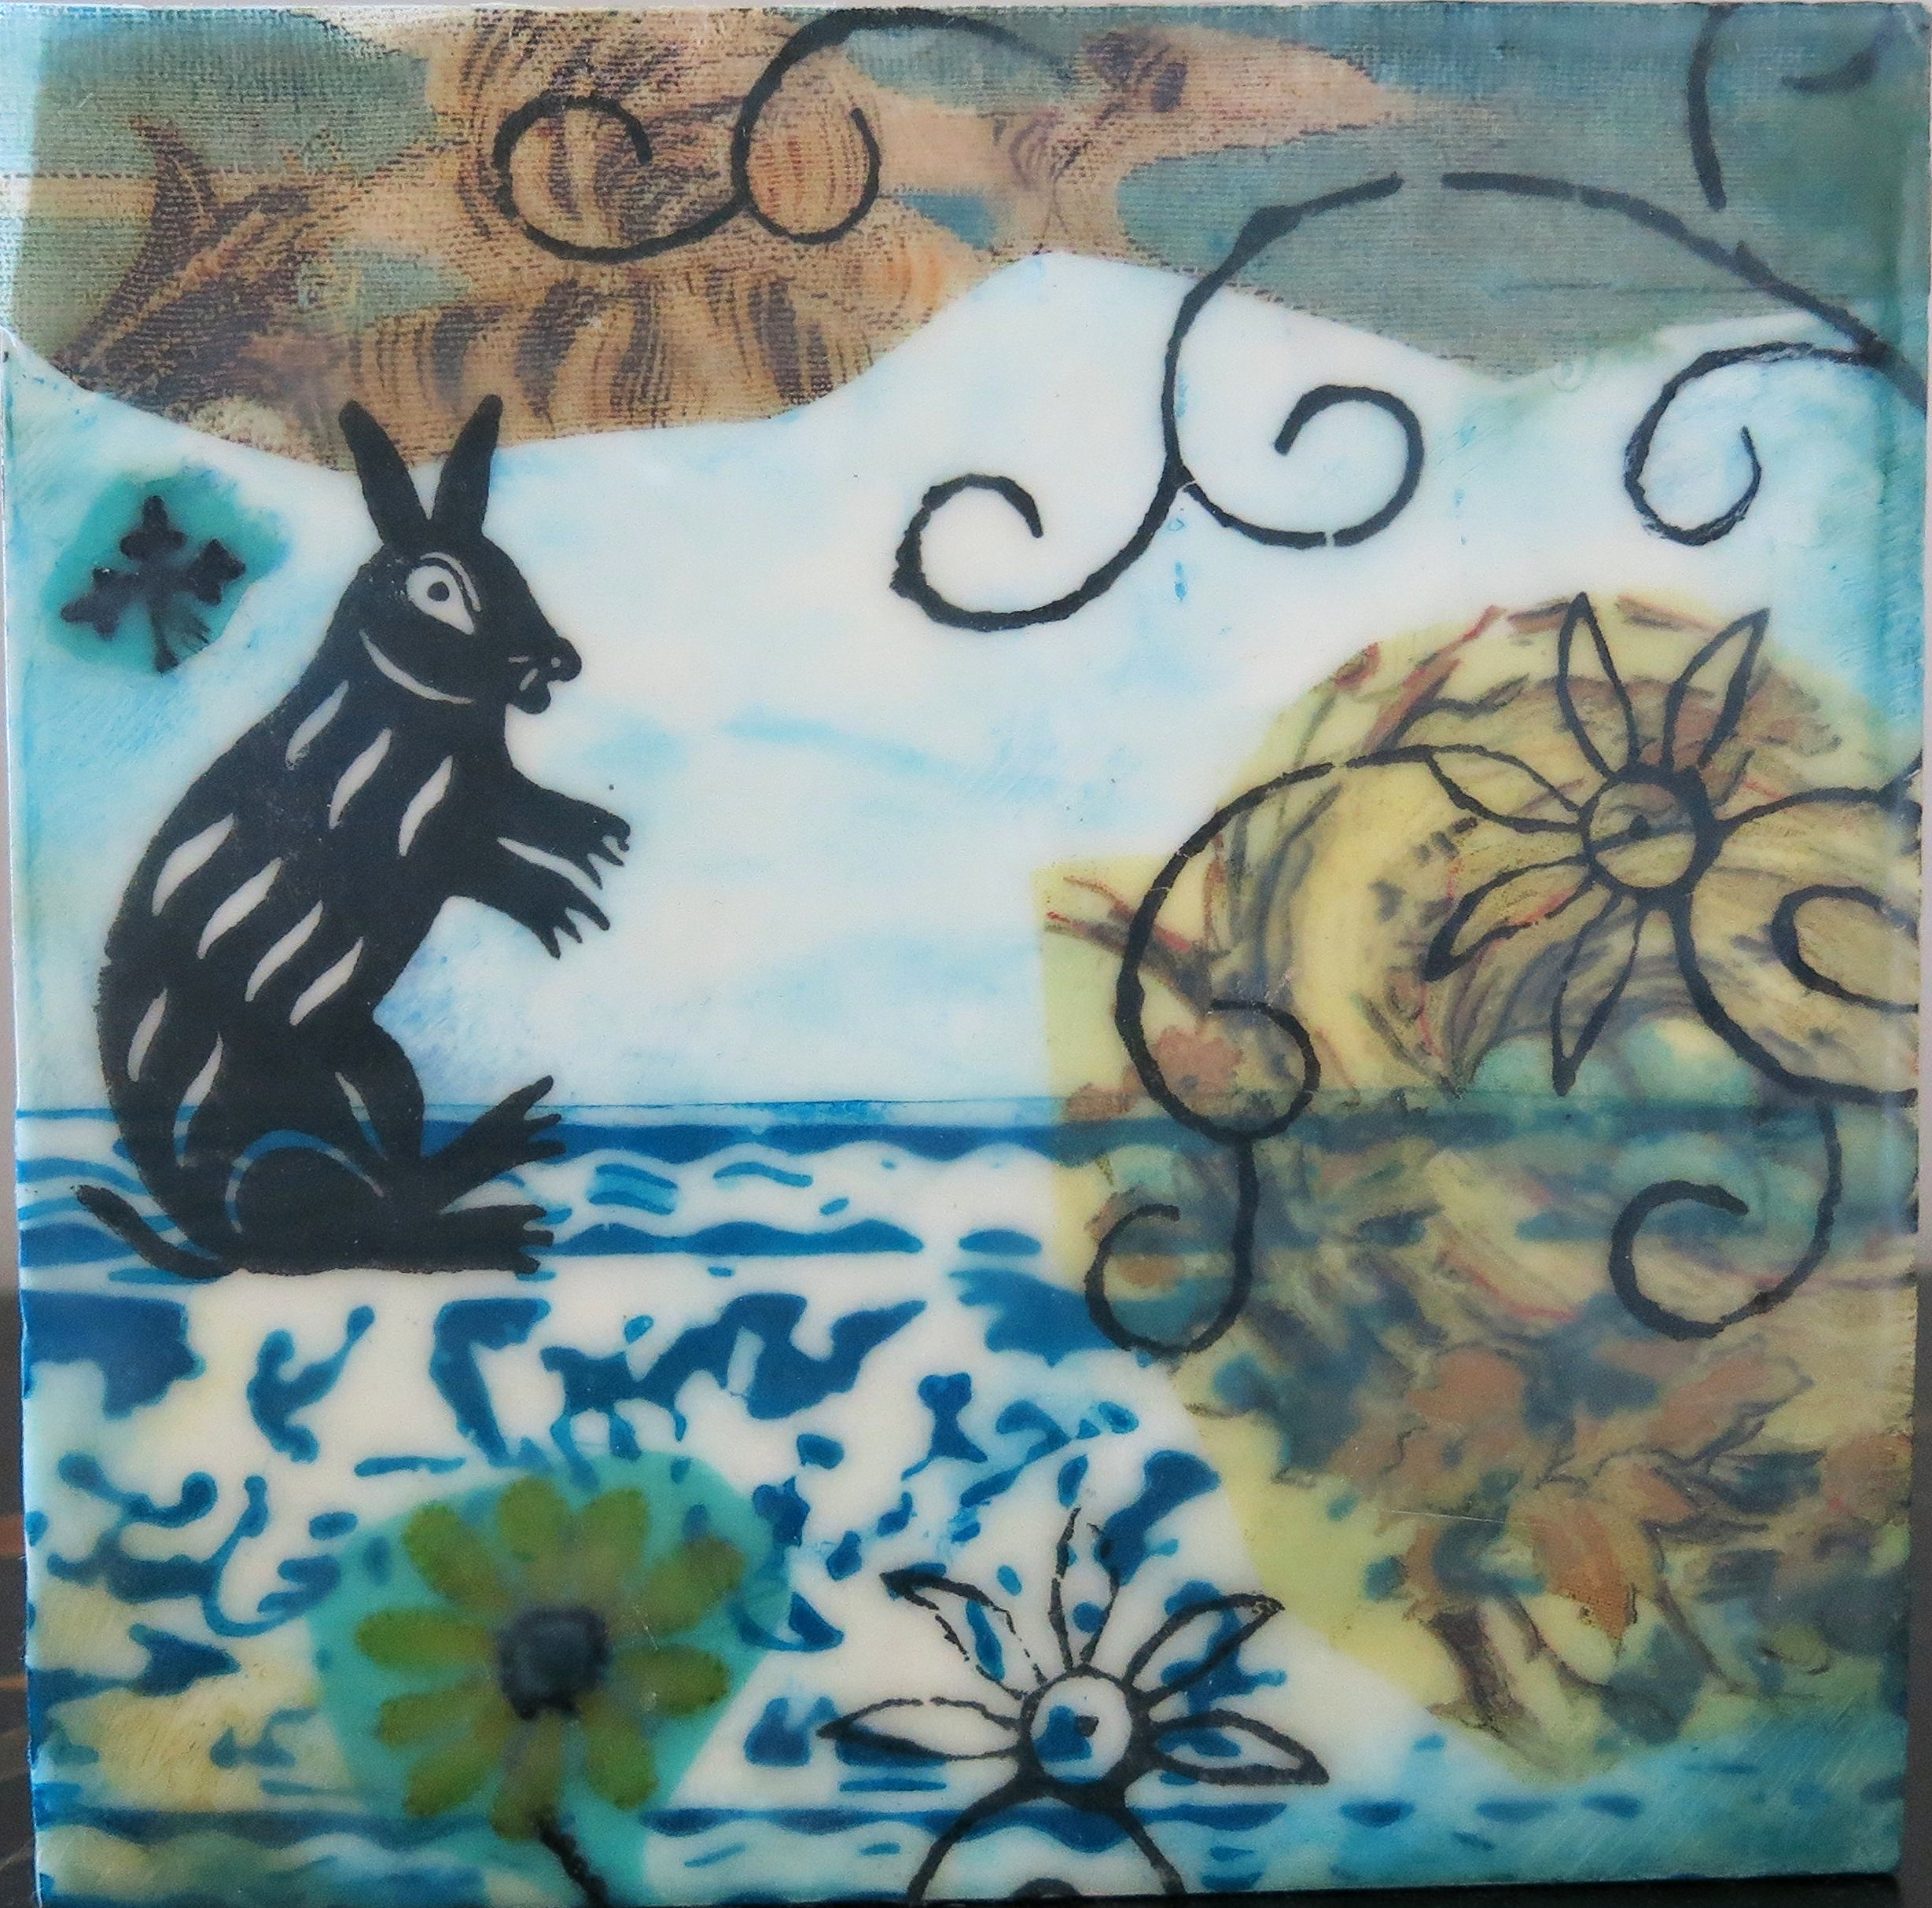 The blue border at the bottom is made by stamping beeswax on paper, painting & ironing out the wax. All of the black designs & rabbit are printed on the surface, then fused with a layer of encaustic medium and heat.